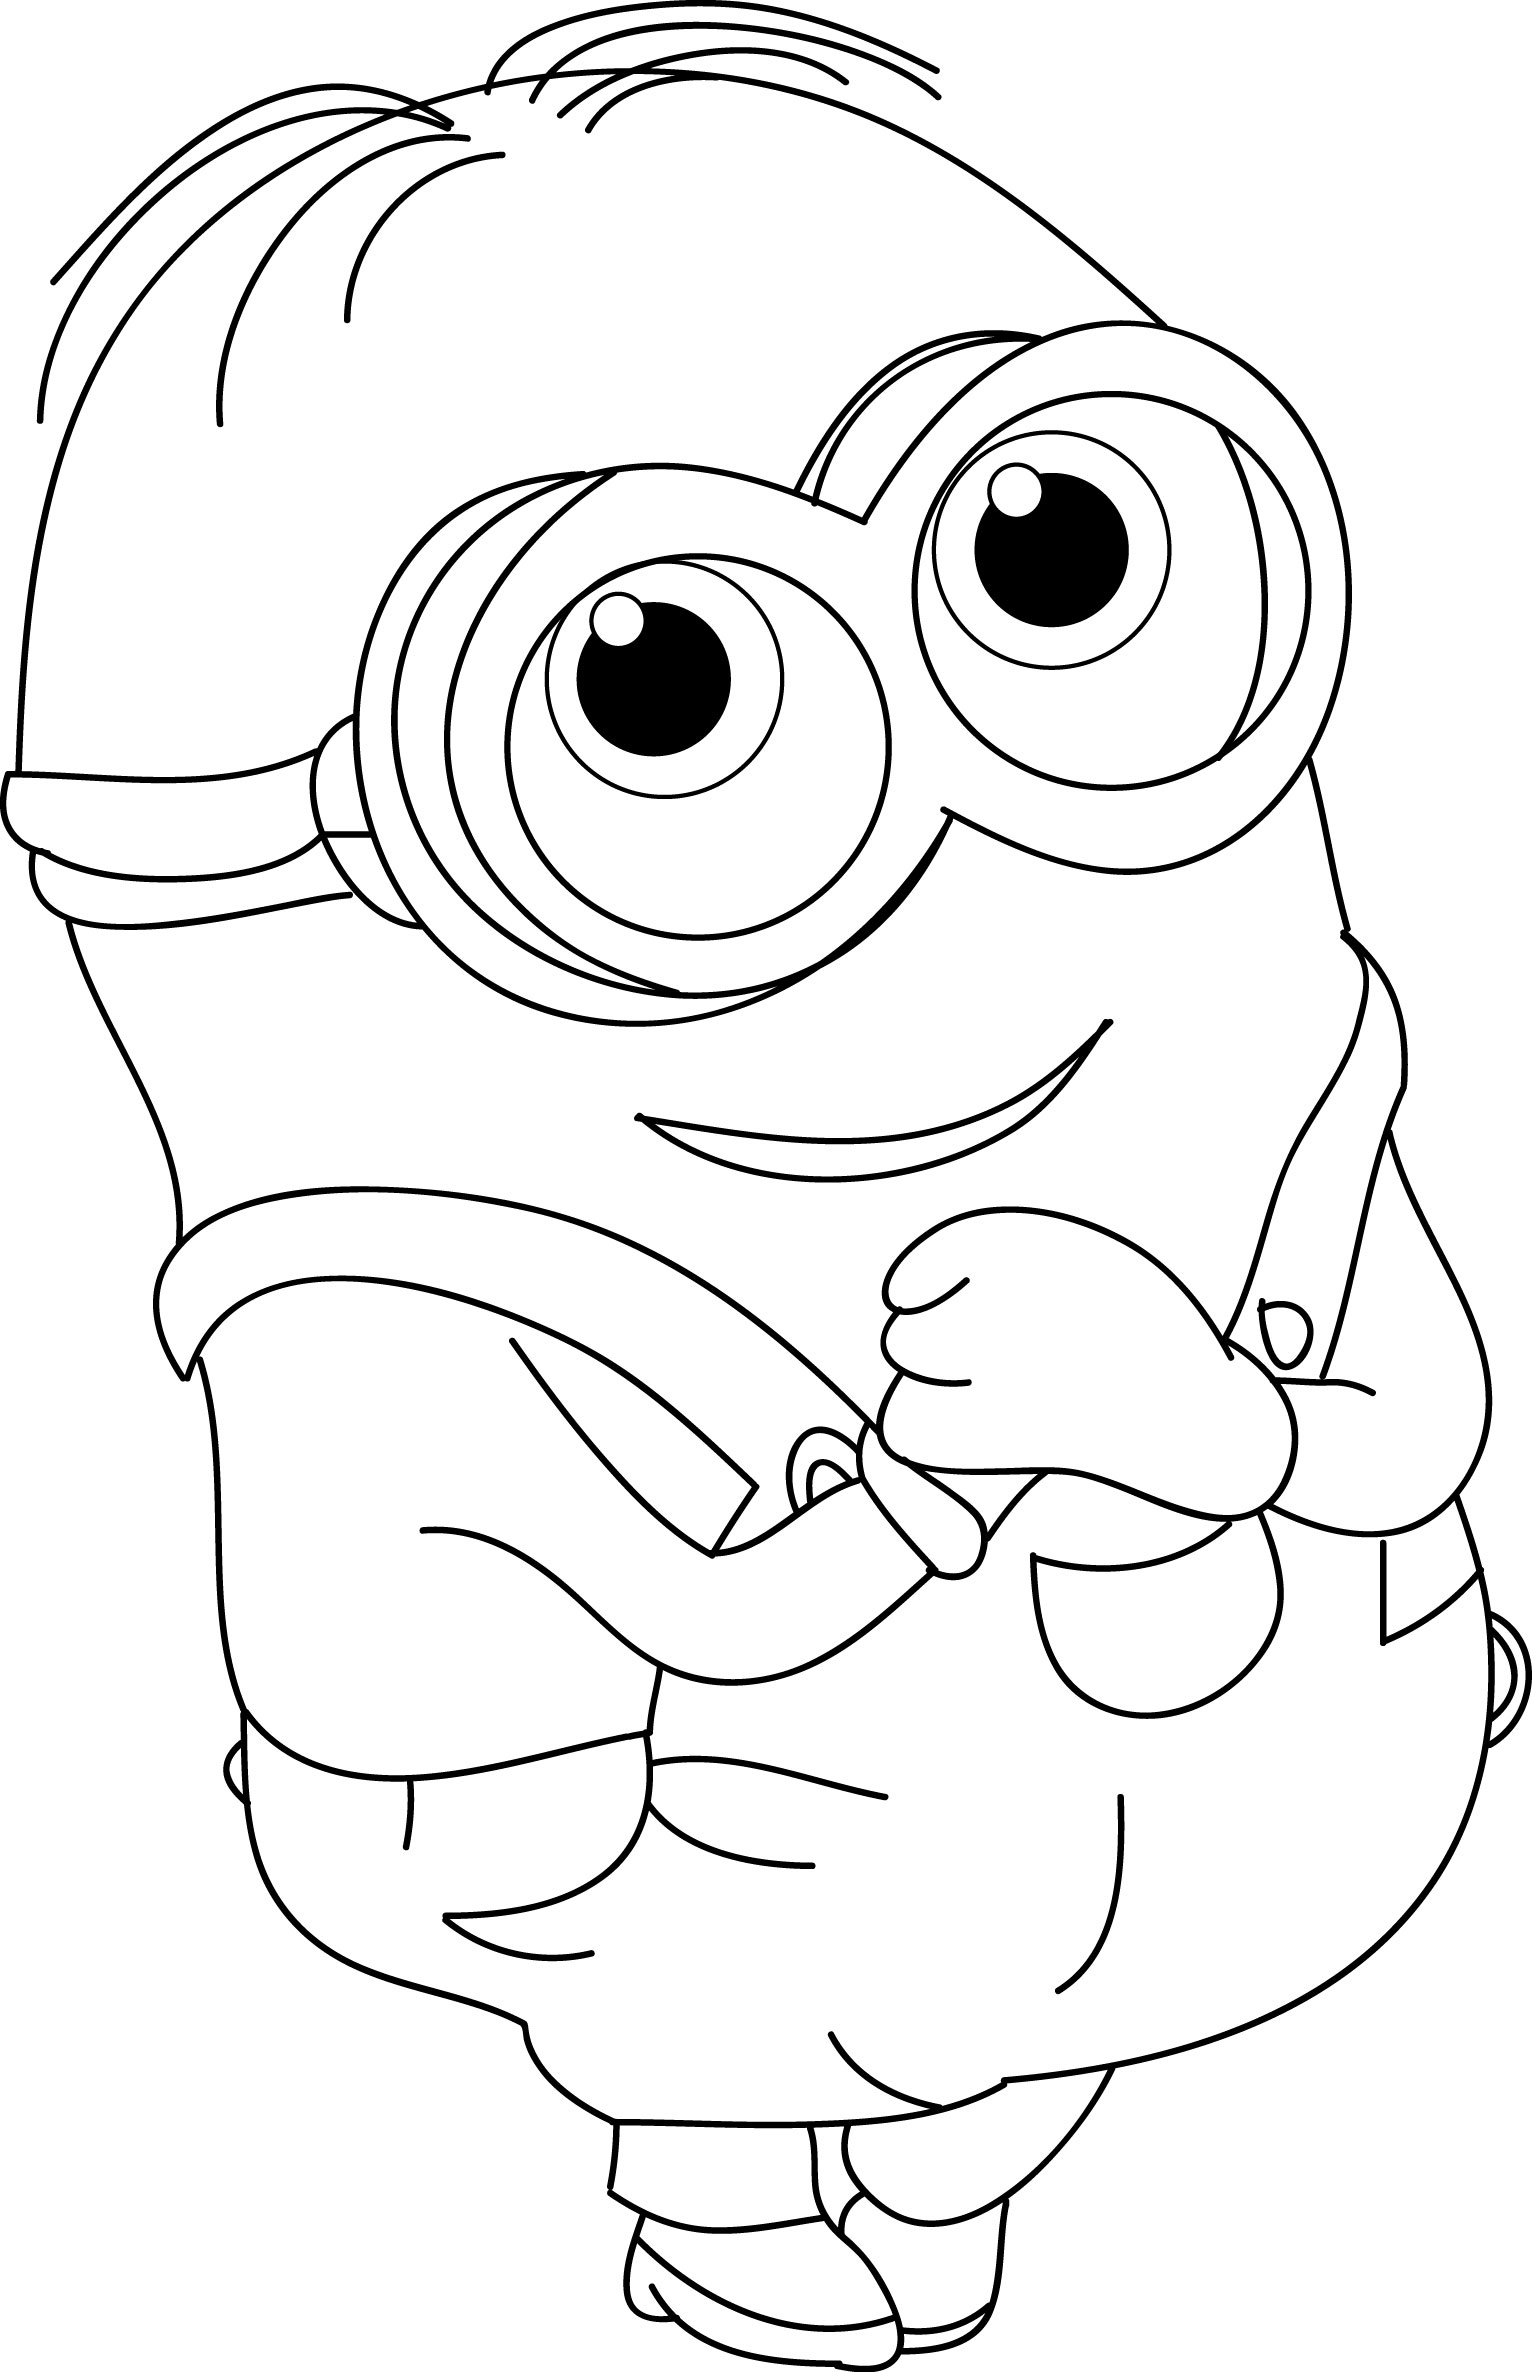 Ausmalbilder Minions Baby : Simple Minion Drawing At Getdrawings Com Free For Personal Use